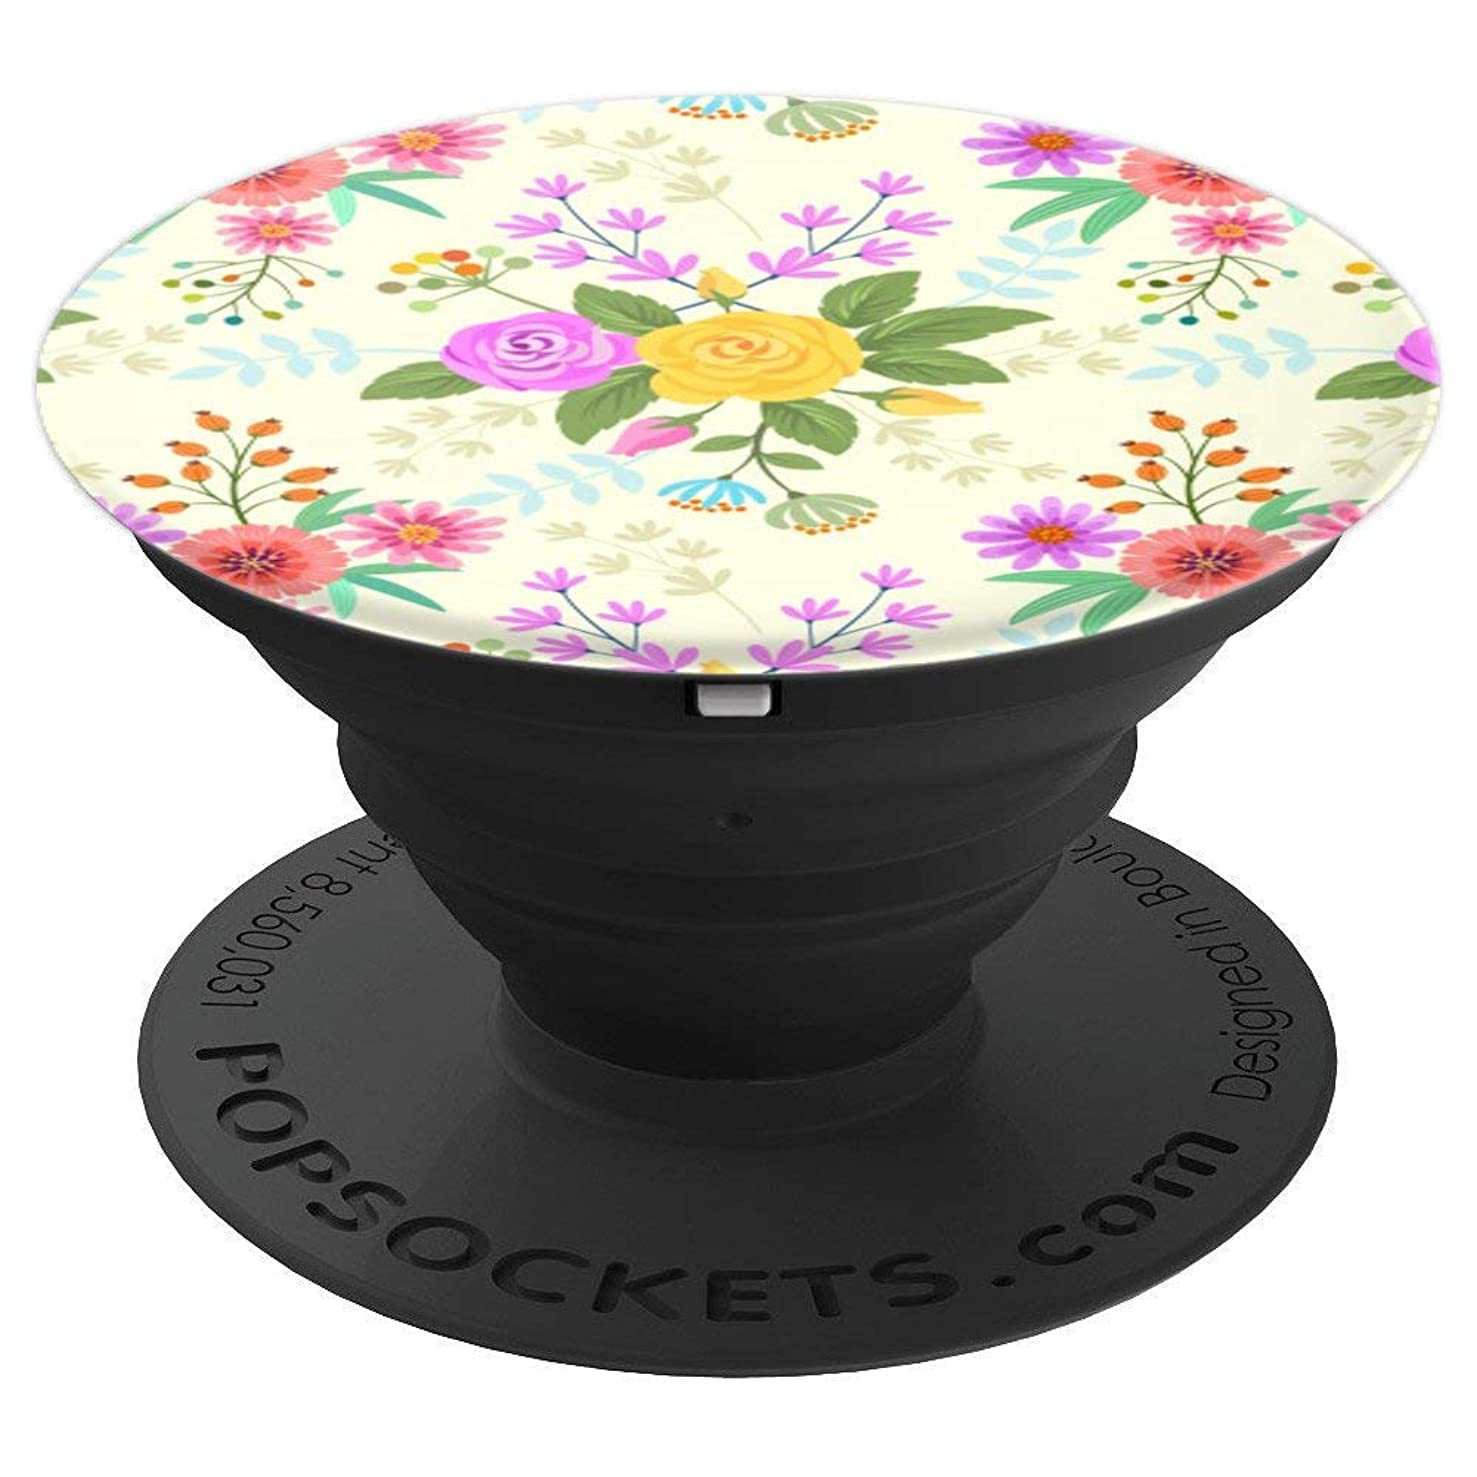 Simple But Elegant Floral Print Gift for Men & Women - PopSockets Grip and Stand for Phones and Tablets